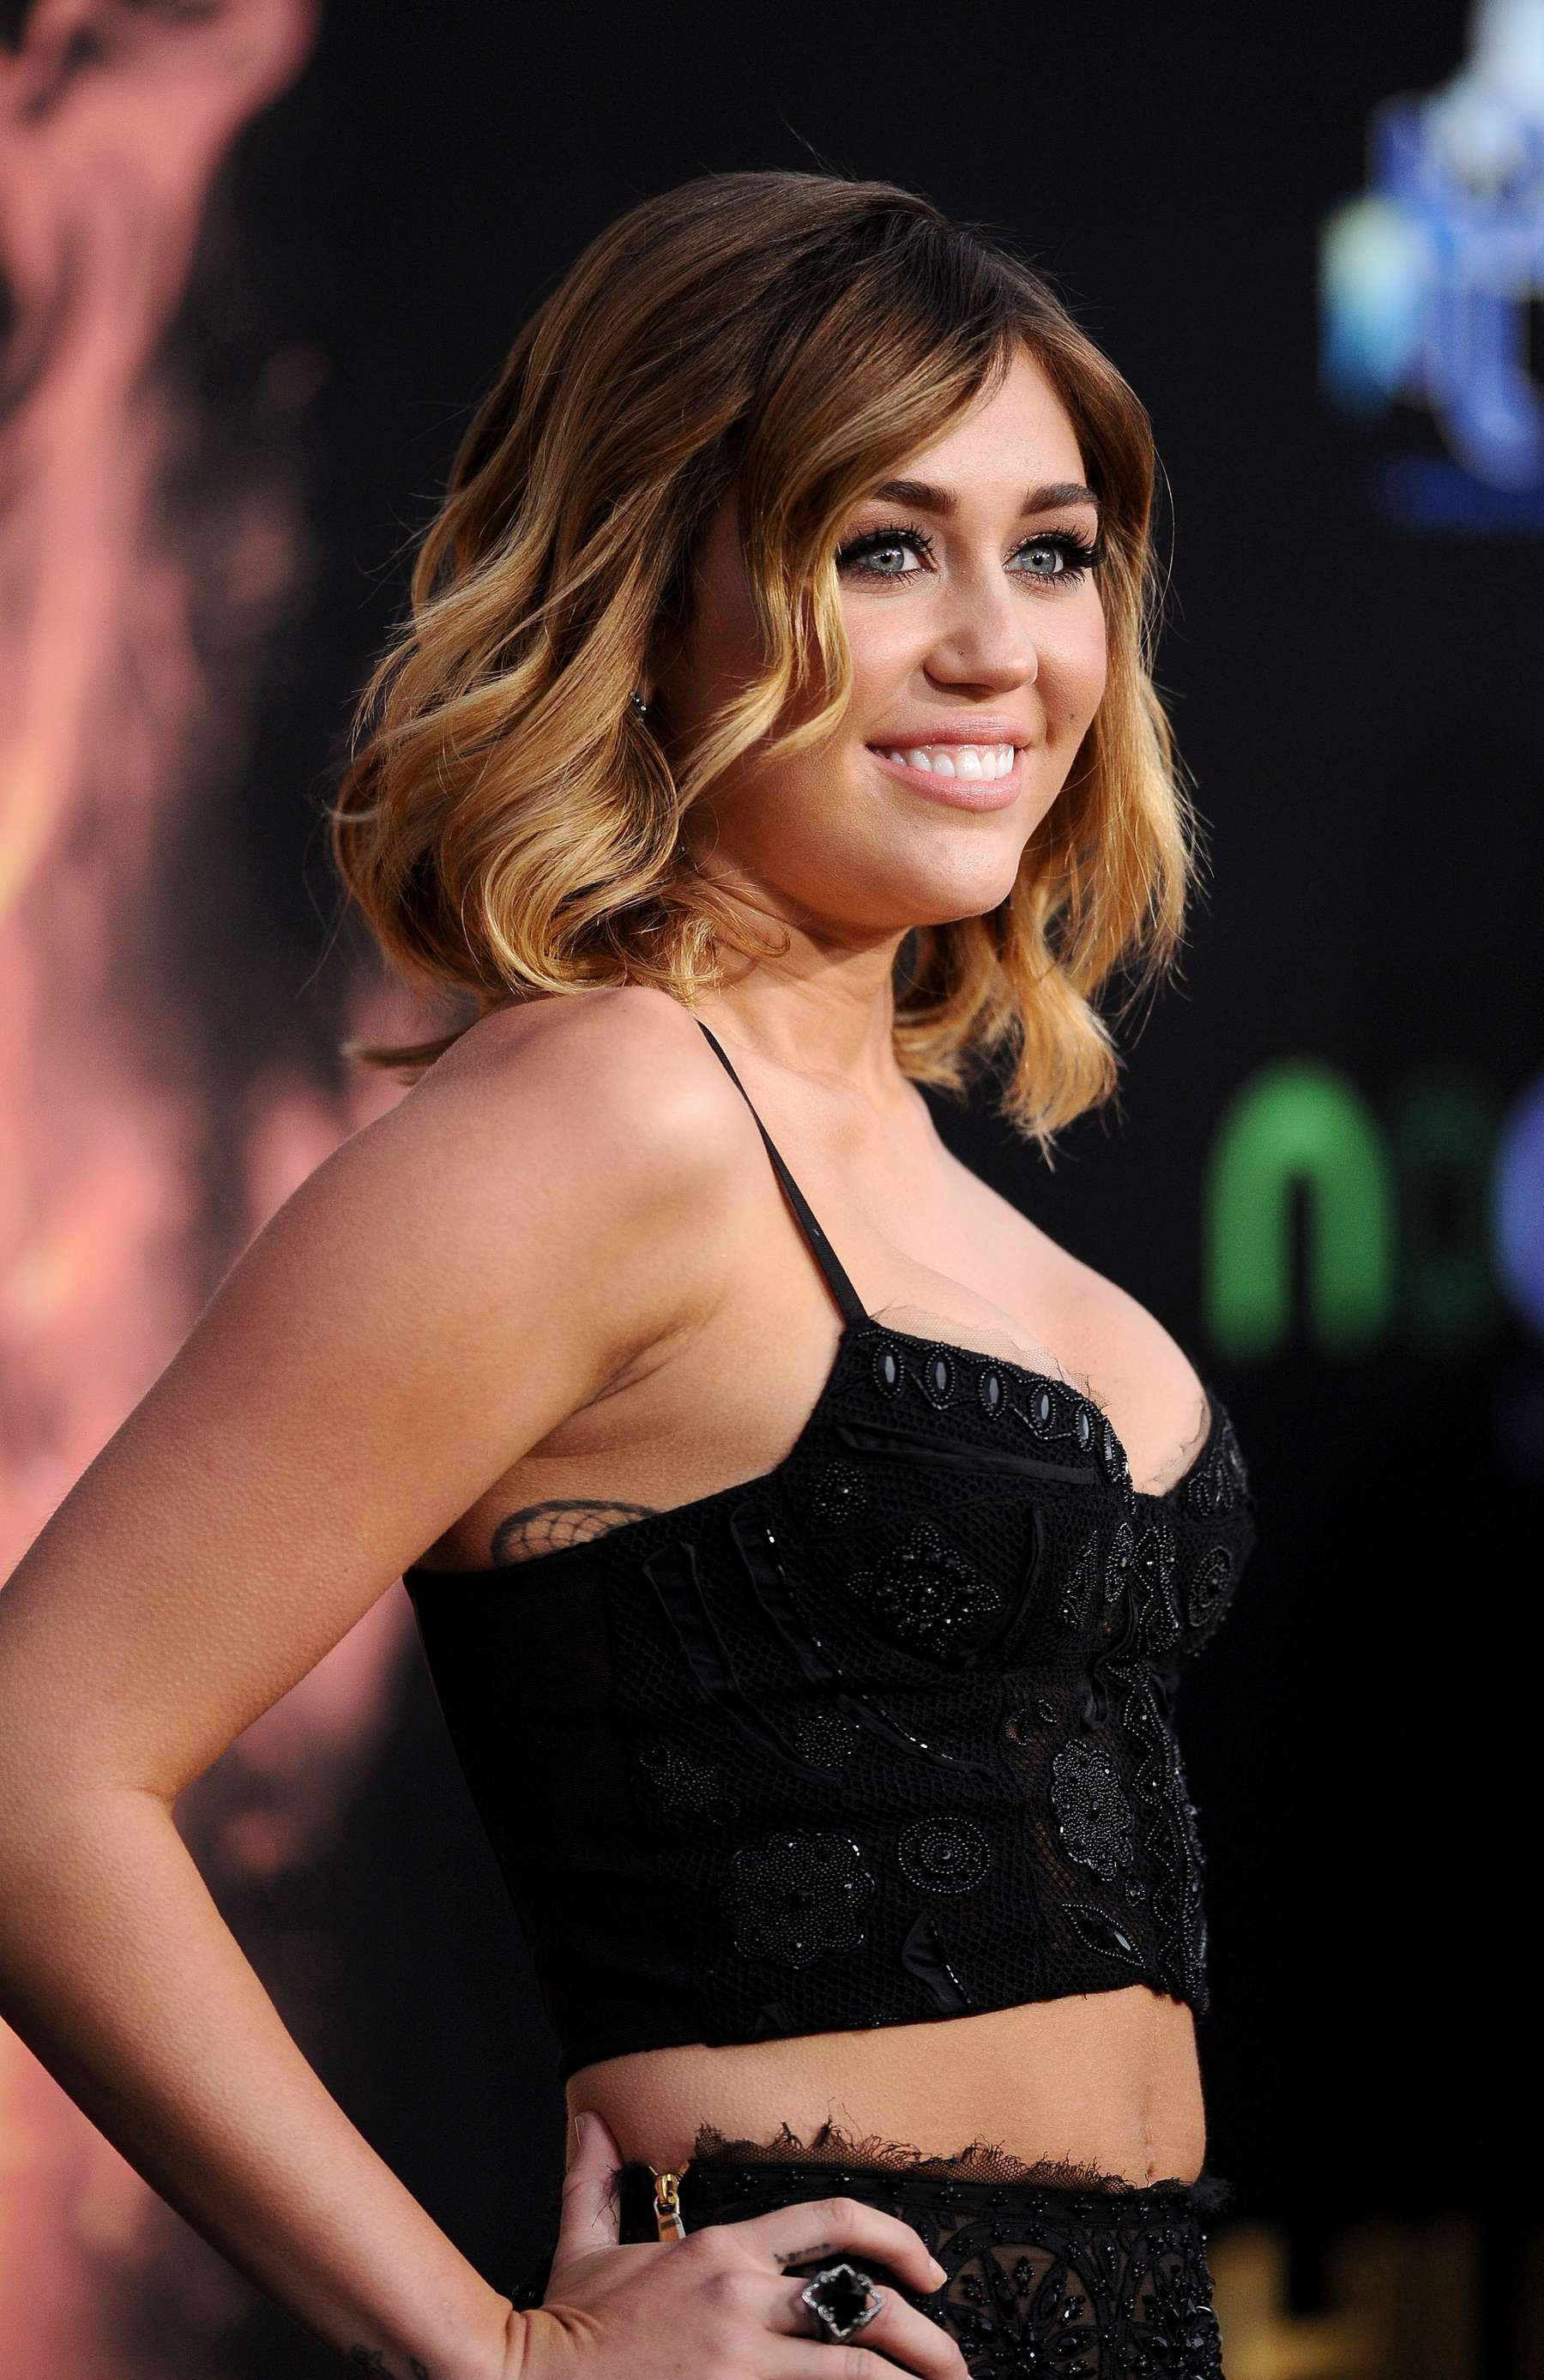 miley cyrus shows big cleavage at the hunger games